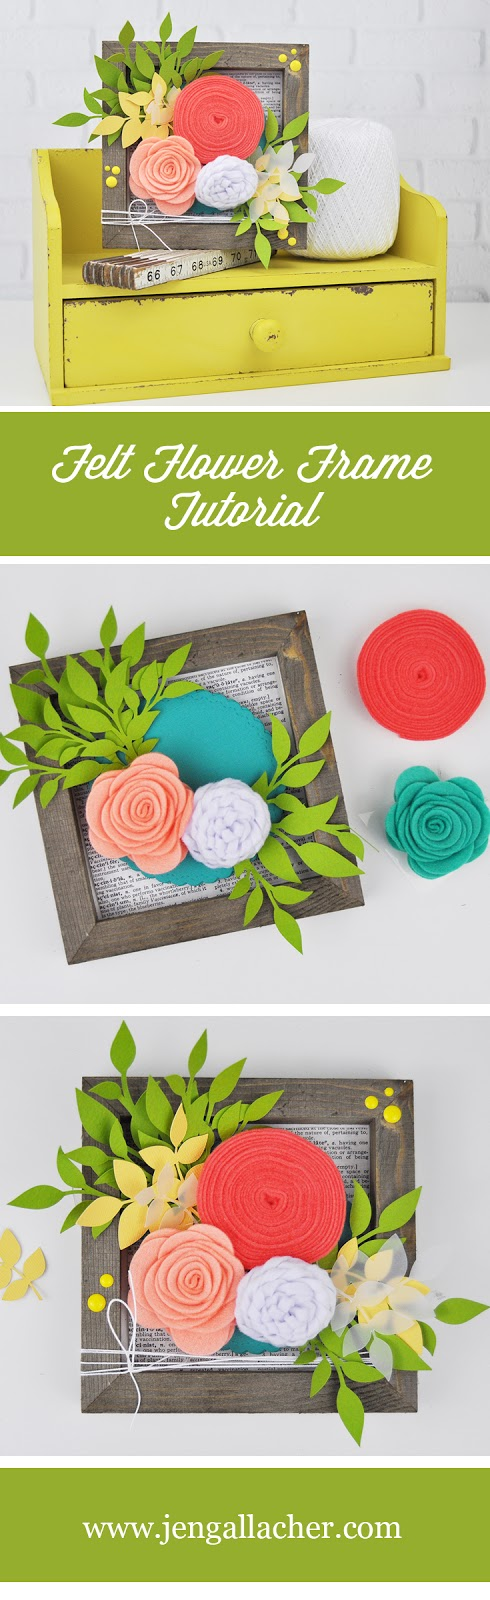 """How to add felt flowers to a wooden frame. Jillibean Soup """"Mix the Media"""" frame and felt flowers. Wooden frame and felt flower tutorial with Jen Gallacher. #jillibeansoup #woodenframediy #feltflowers #jengallacher #papercrafts"""